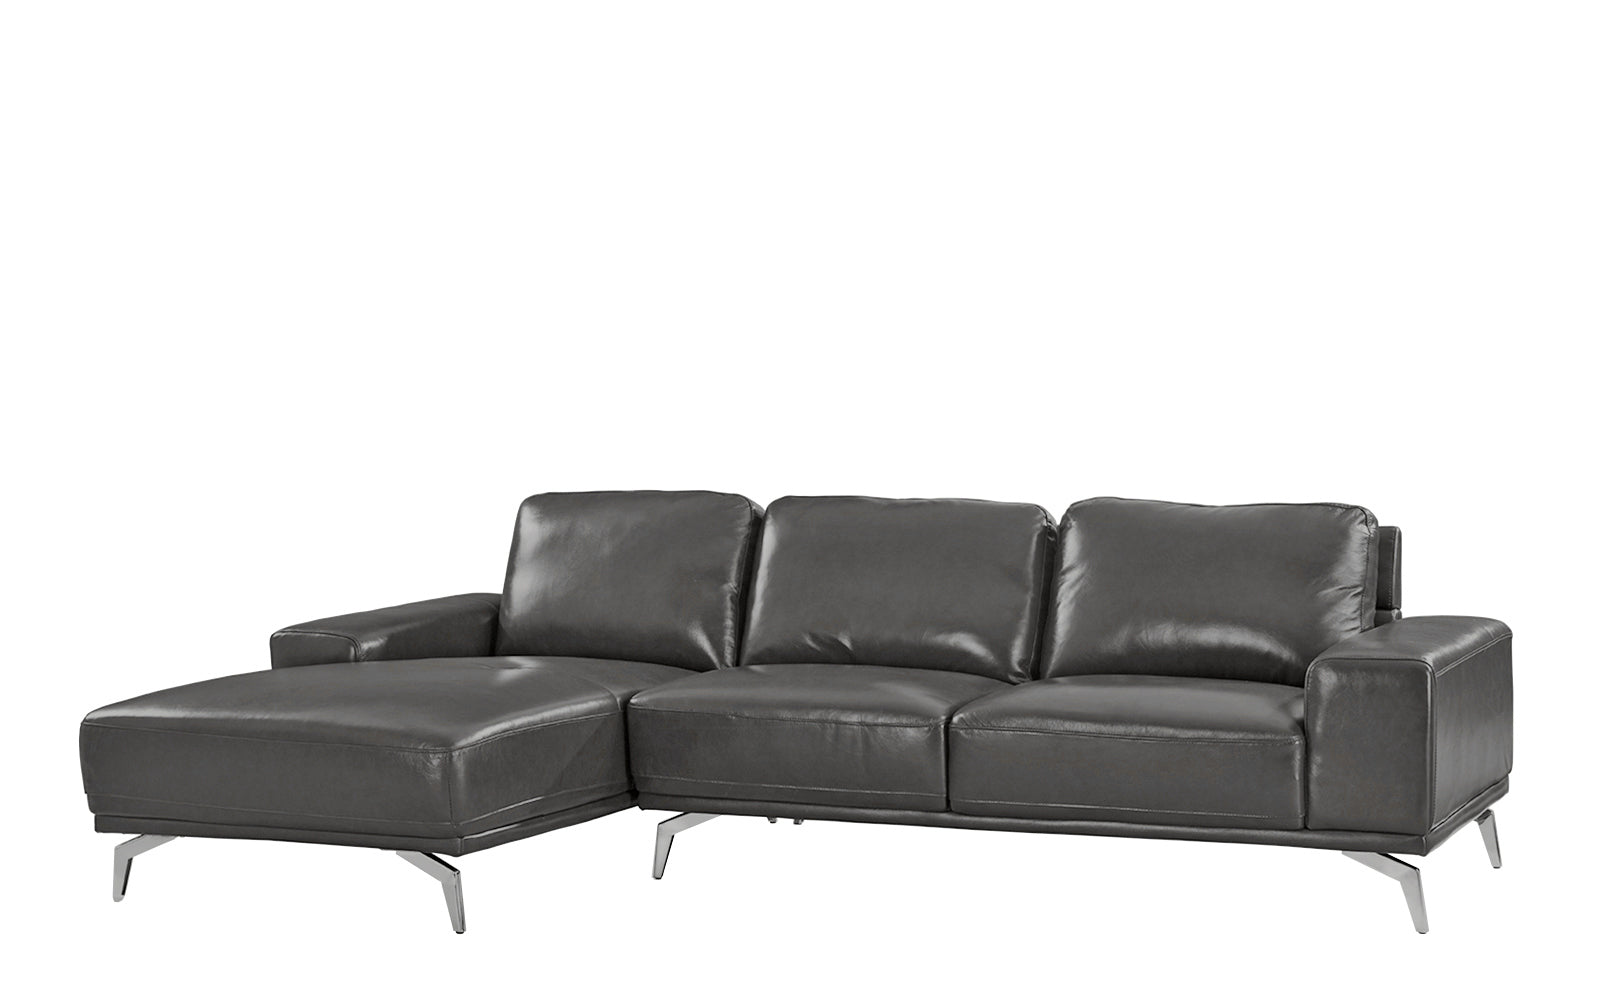 Benci Modern Low Profile L-Shape Sectional Sofa with Left Chaise ...